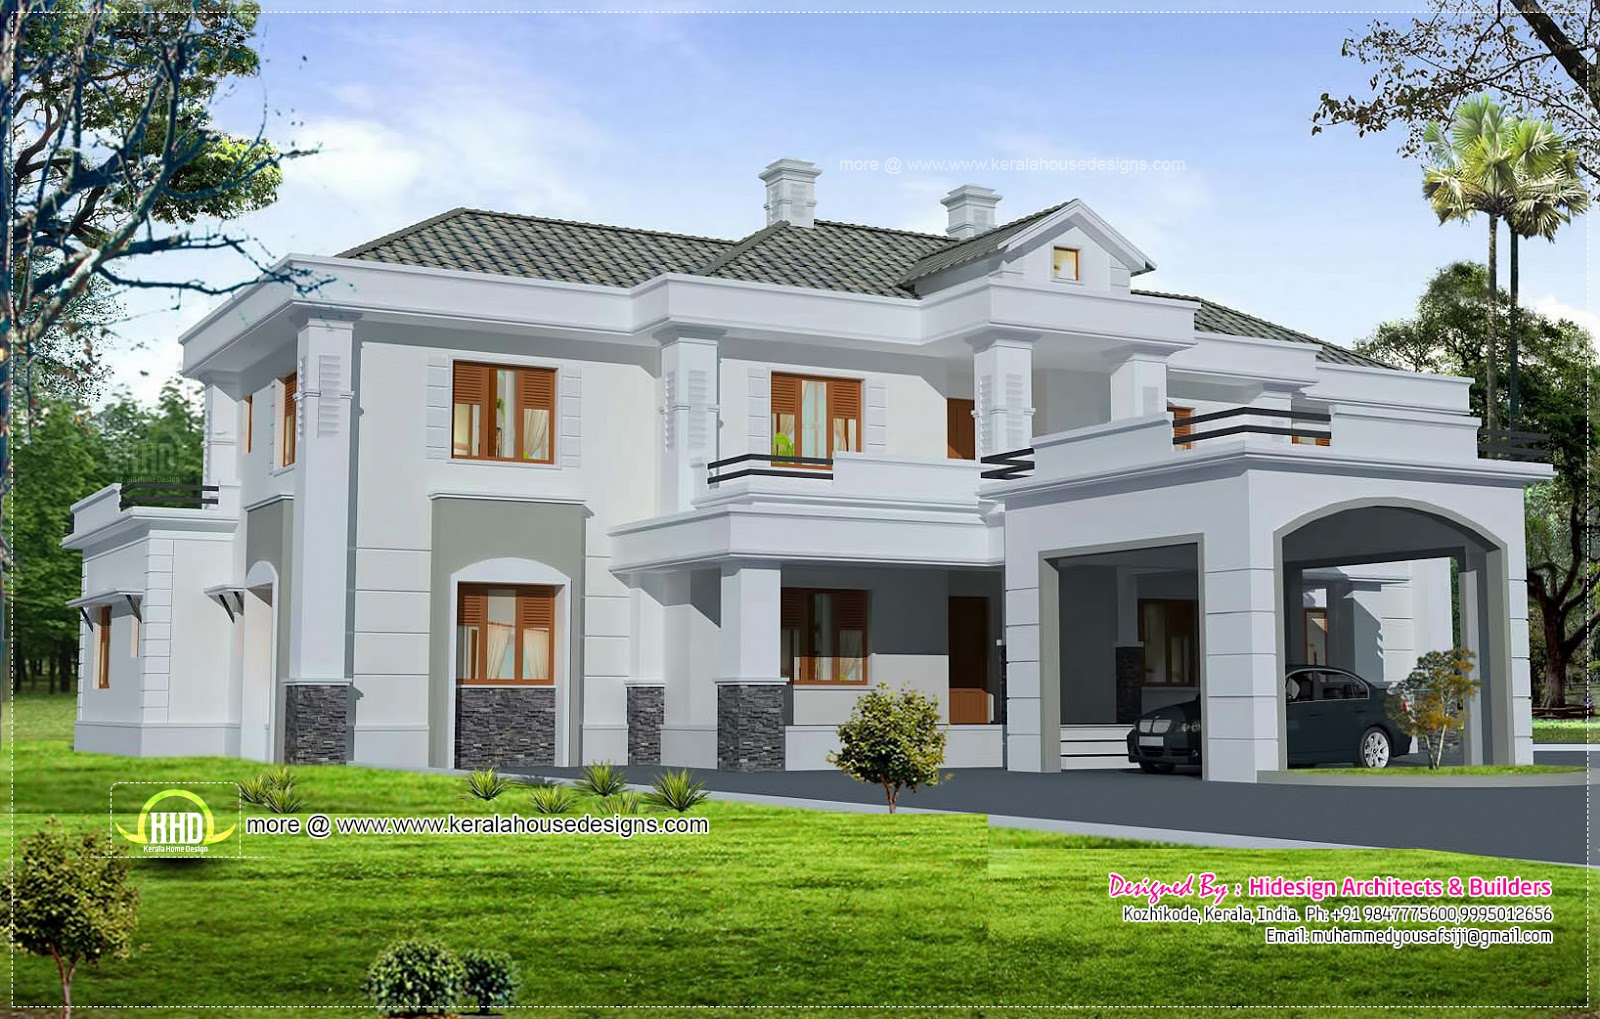 Luxury Colonial Style Home Design With Court Yard Home Kerala Plans